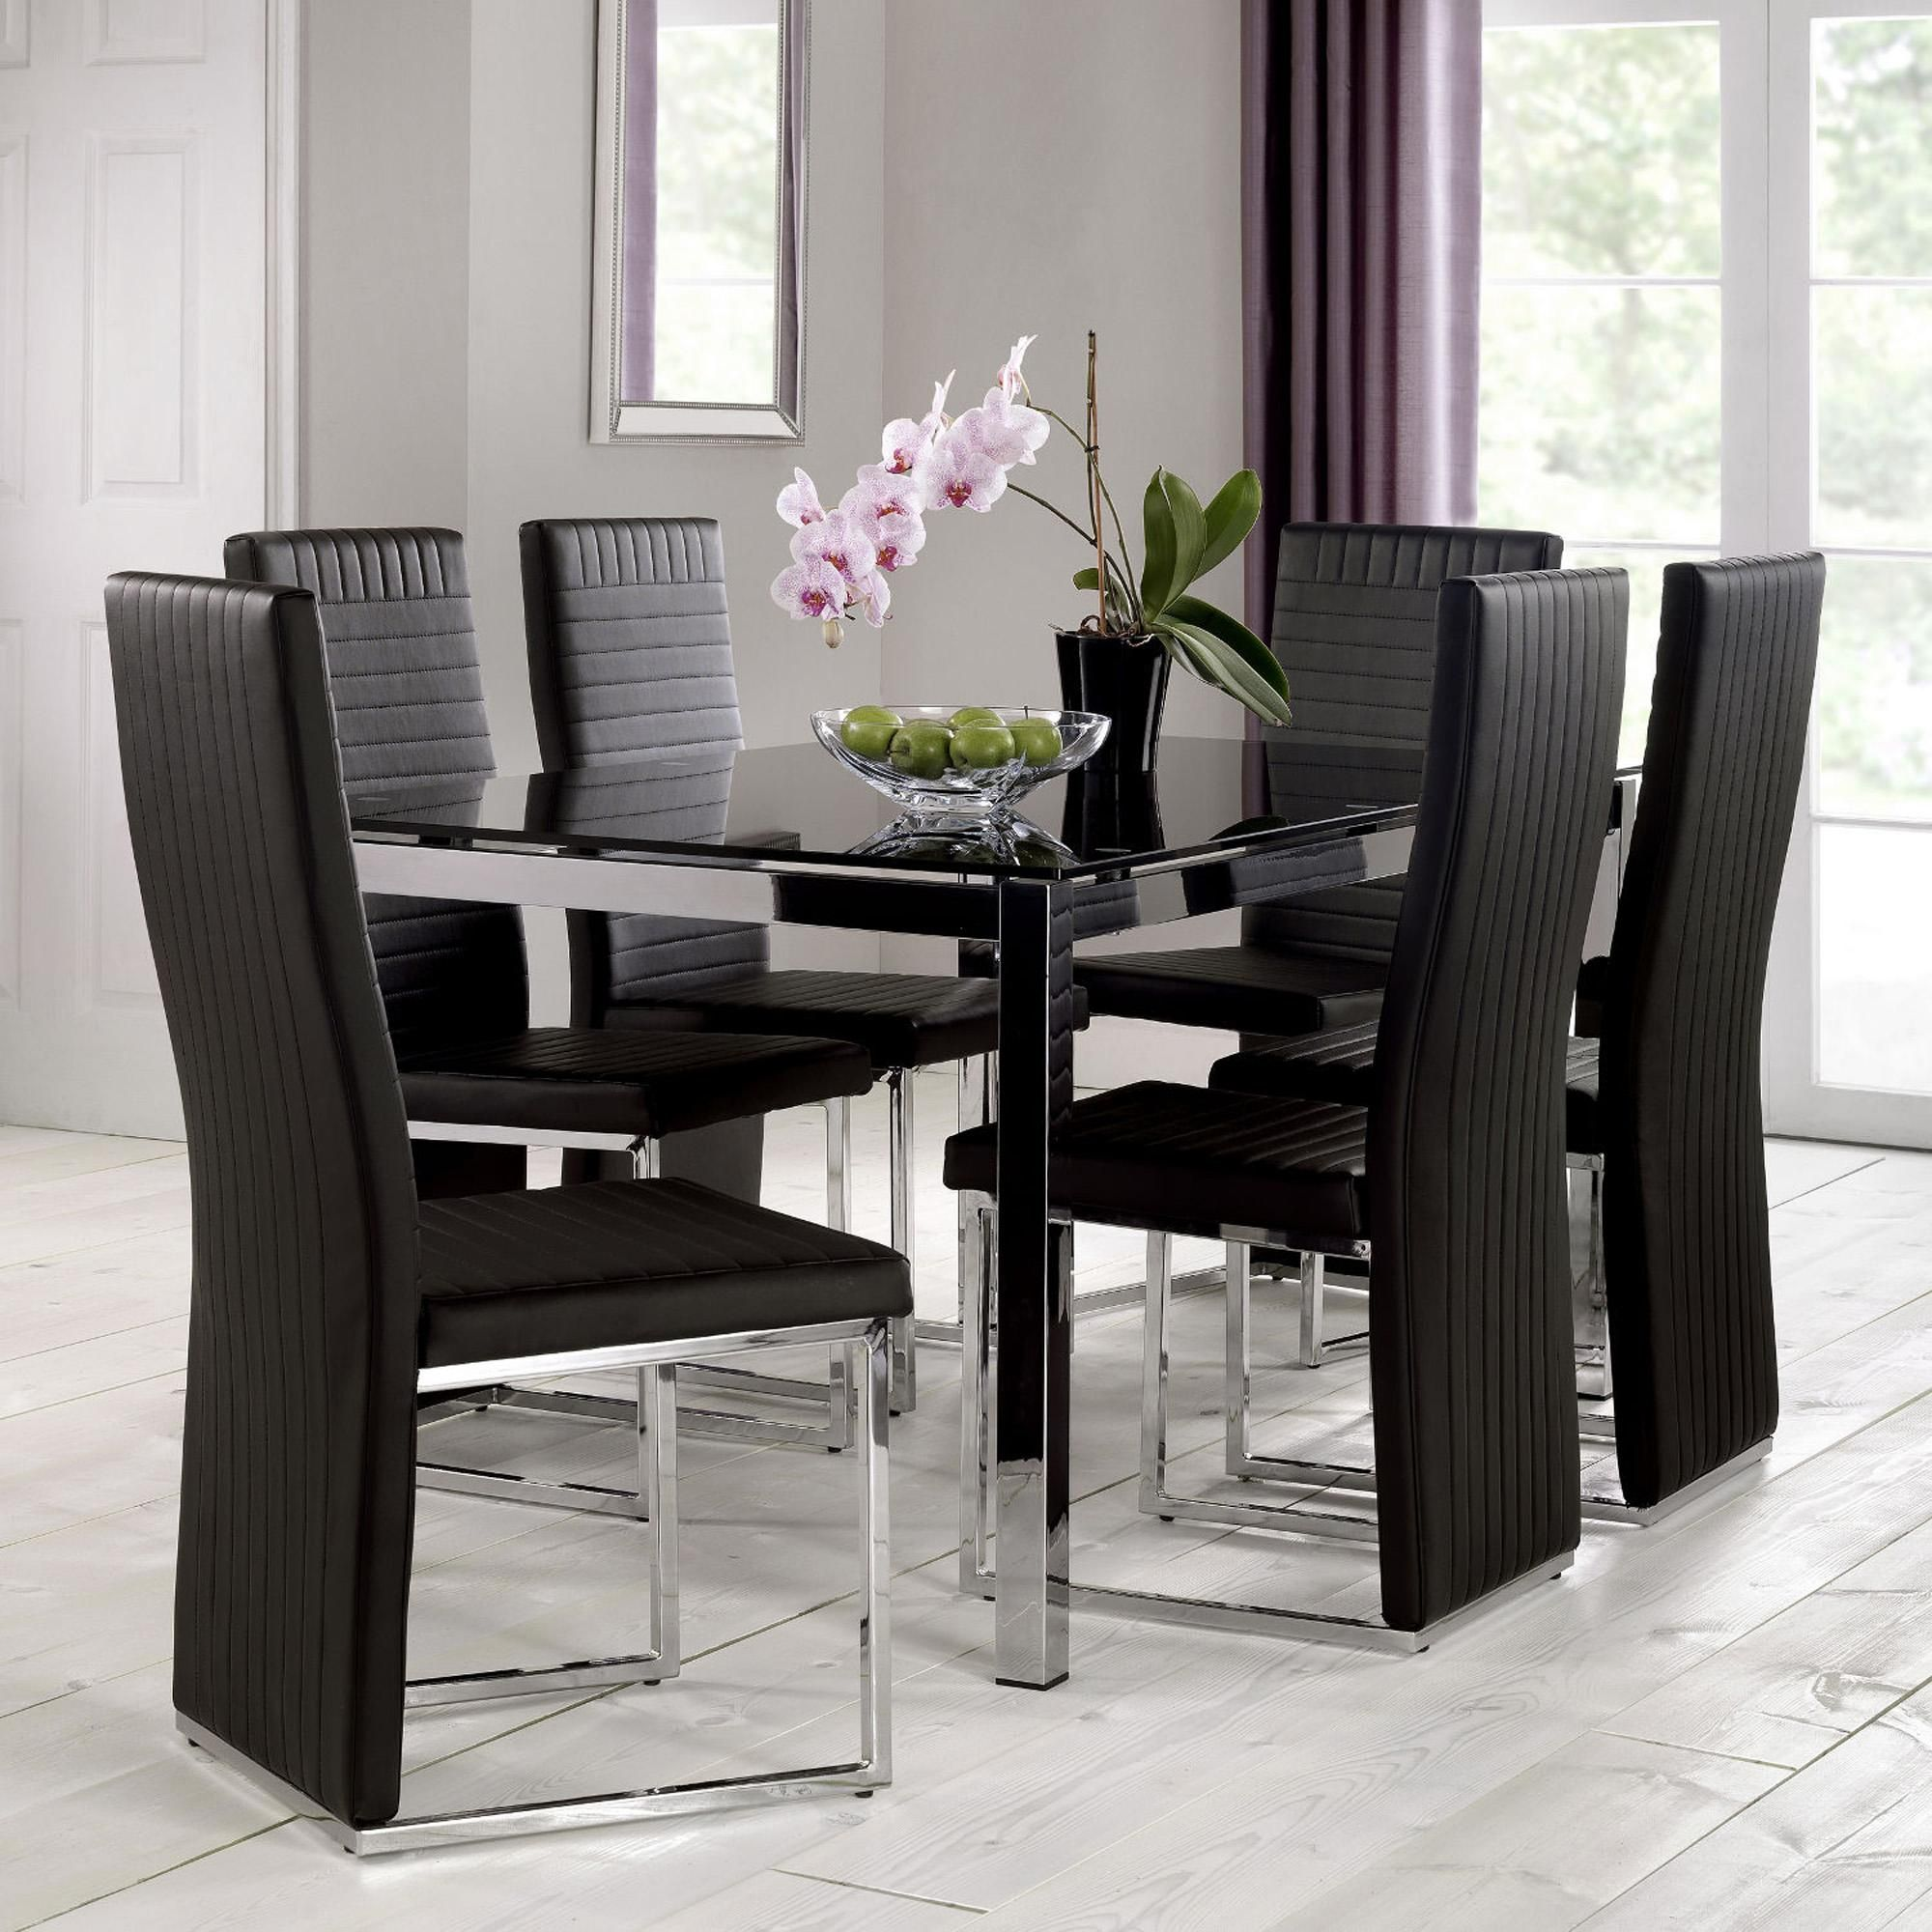 Tempo 160cm Glass Top Dining Table Black Dining Room Black Glass Dining Table Black Dining Table Set